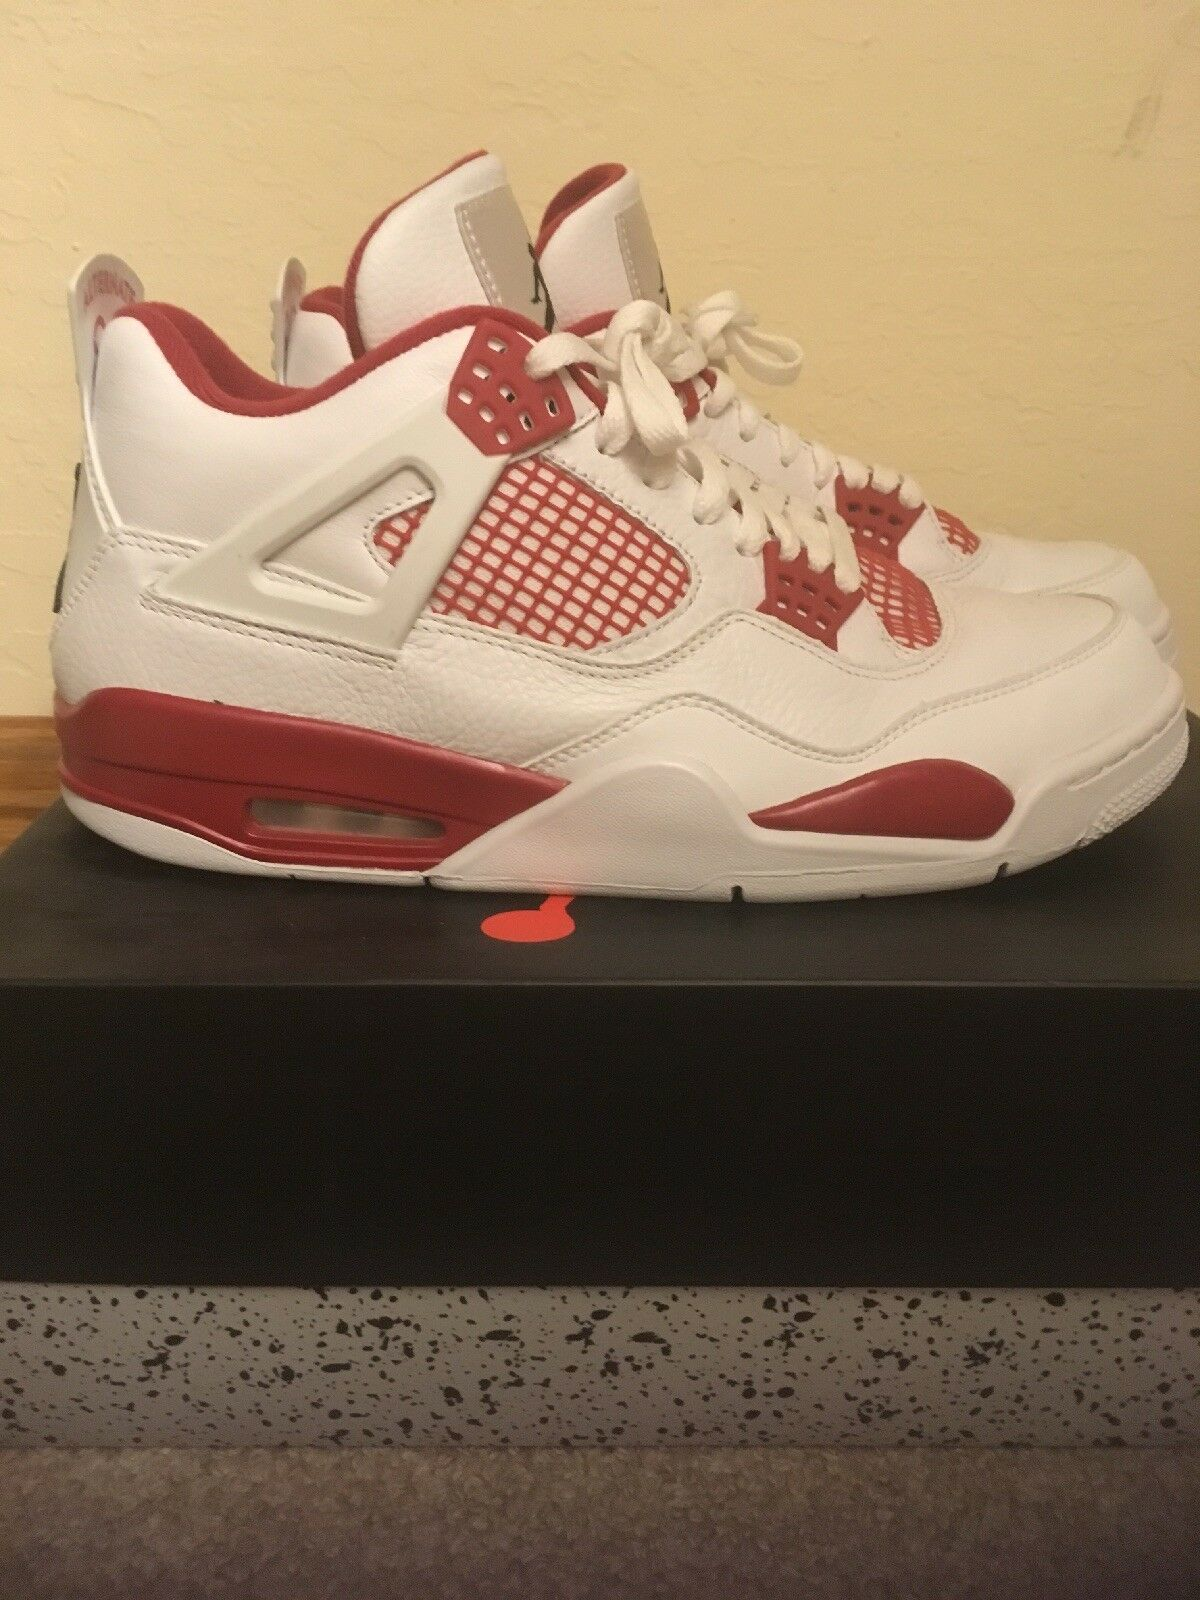 "Air Jordan 4 Retro  Alternate 89"" (White, Gym Red, Black) Men Size 11"